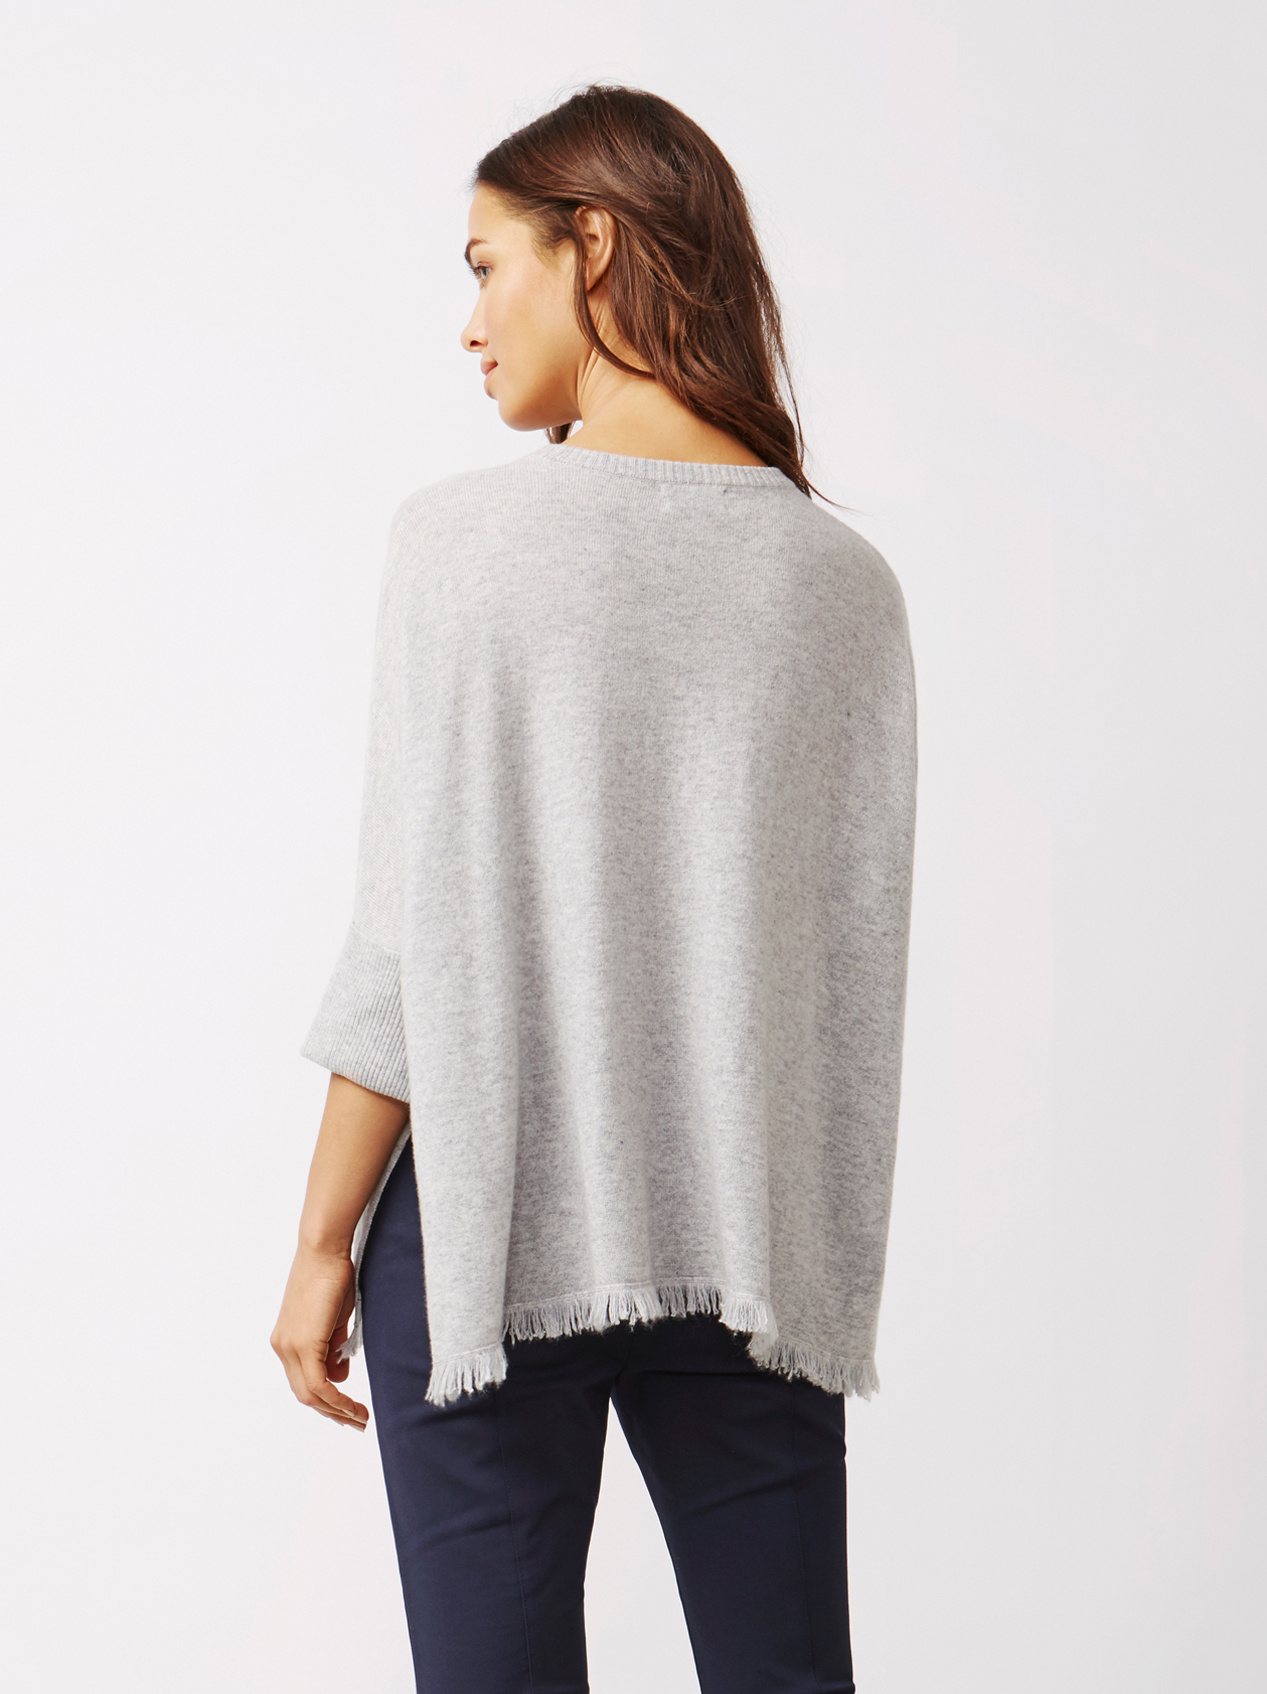 Soft Goat Women's Fringe Poncho Light Grey